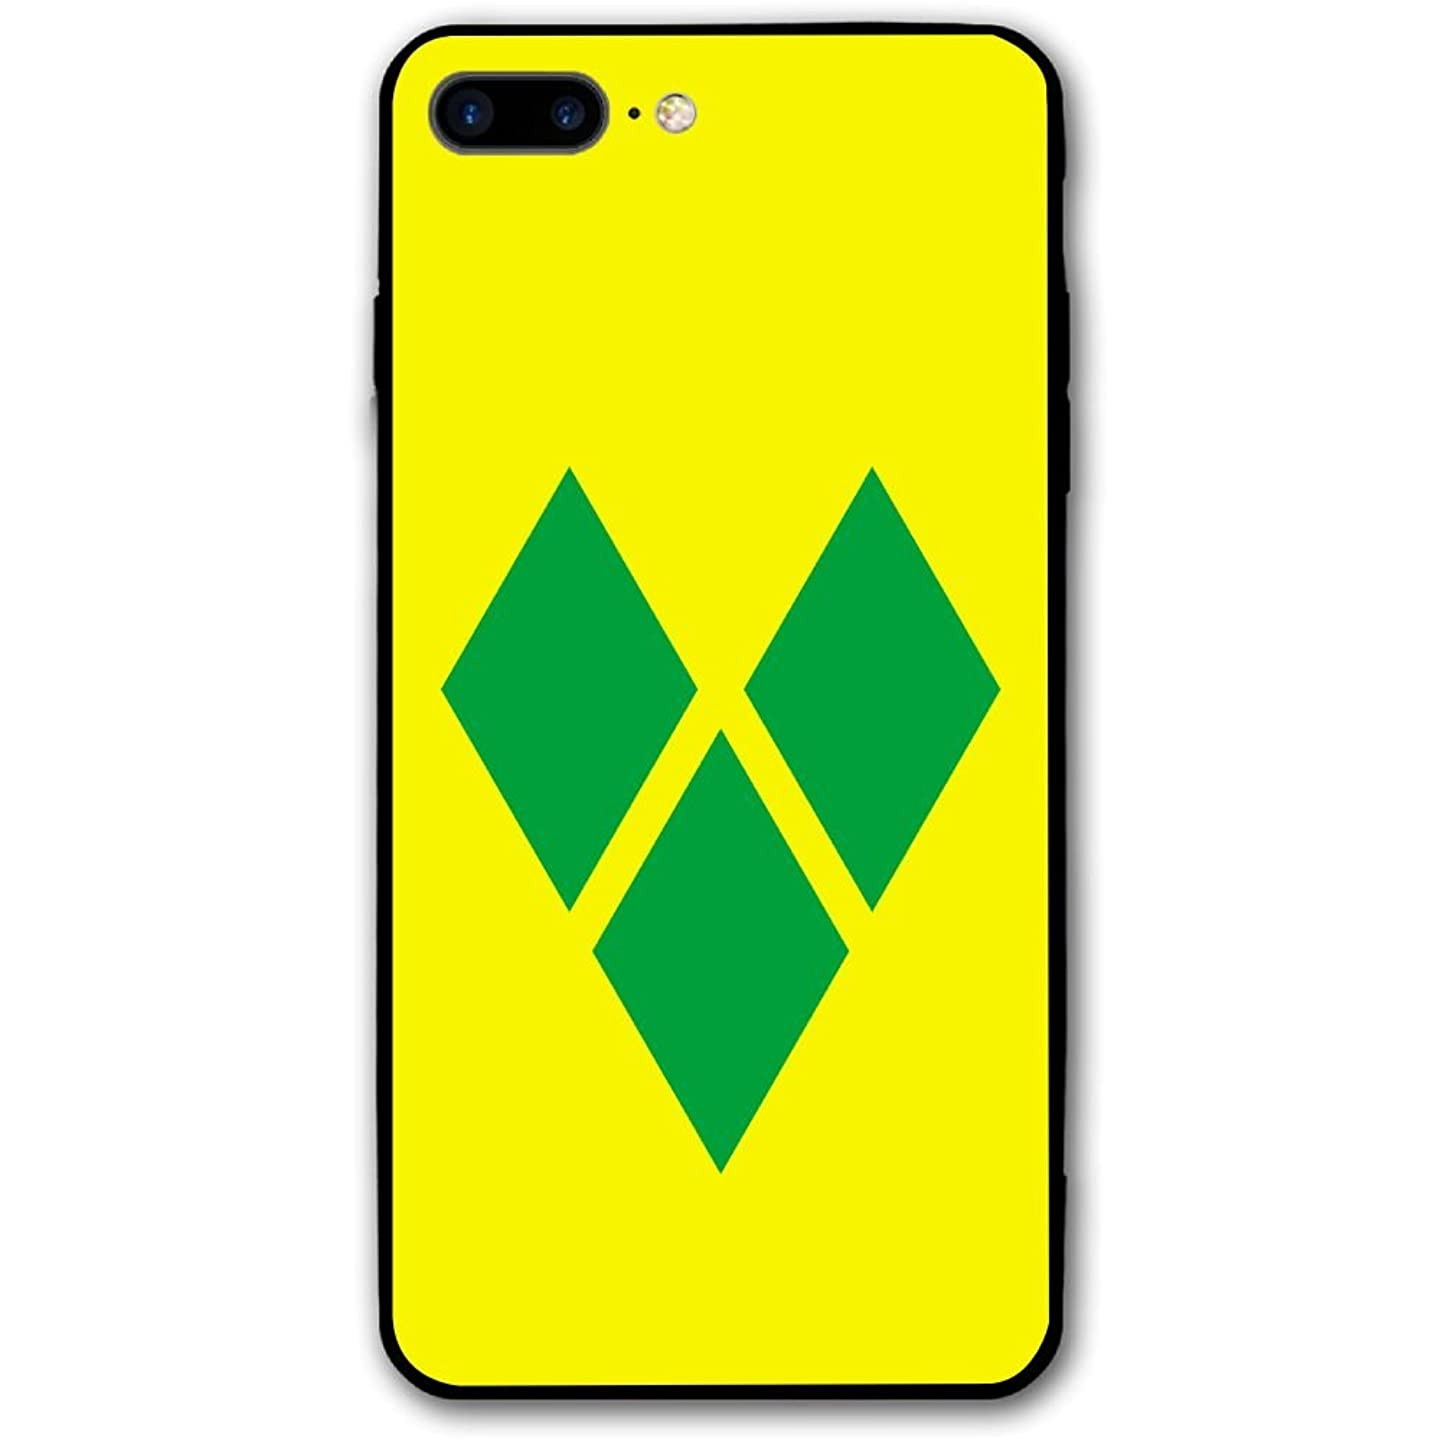 Saint Vincent And The Grenadines Flag IPhone 8 Plus/Iphone 7 Plus Phone Case,Hard PC Protective Durable Flexible Mobile Phone Shell,Slim 3D Print Back Cover 5.5 Inch For Iphone 7P/8P